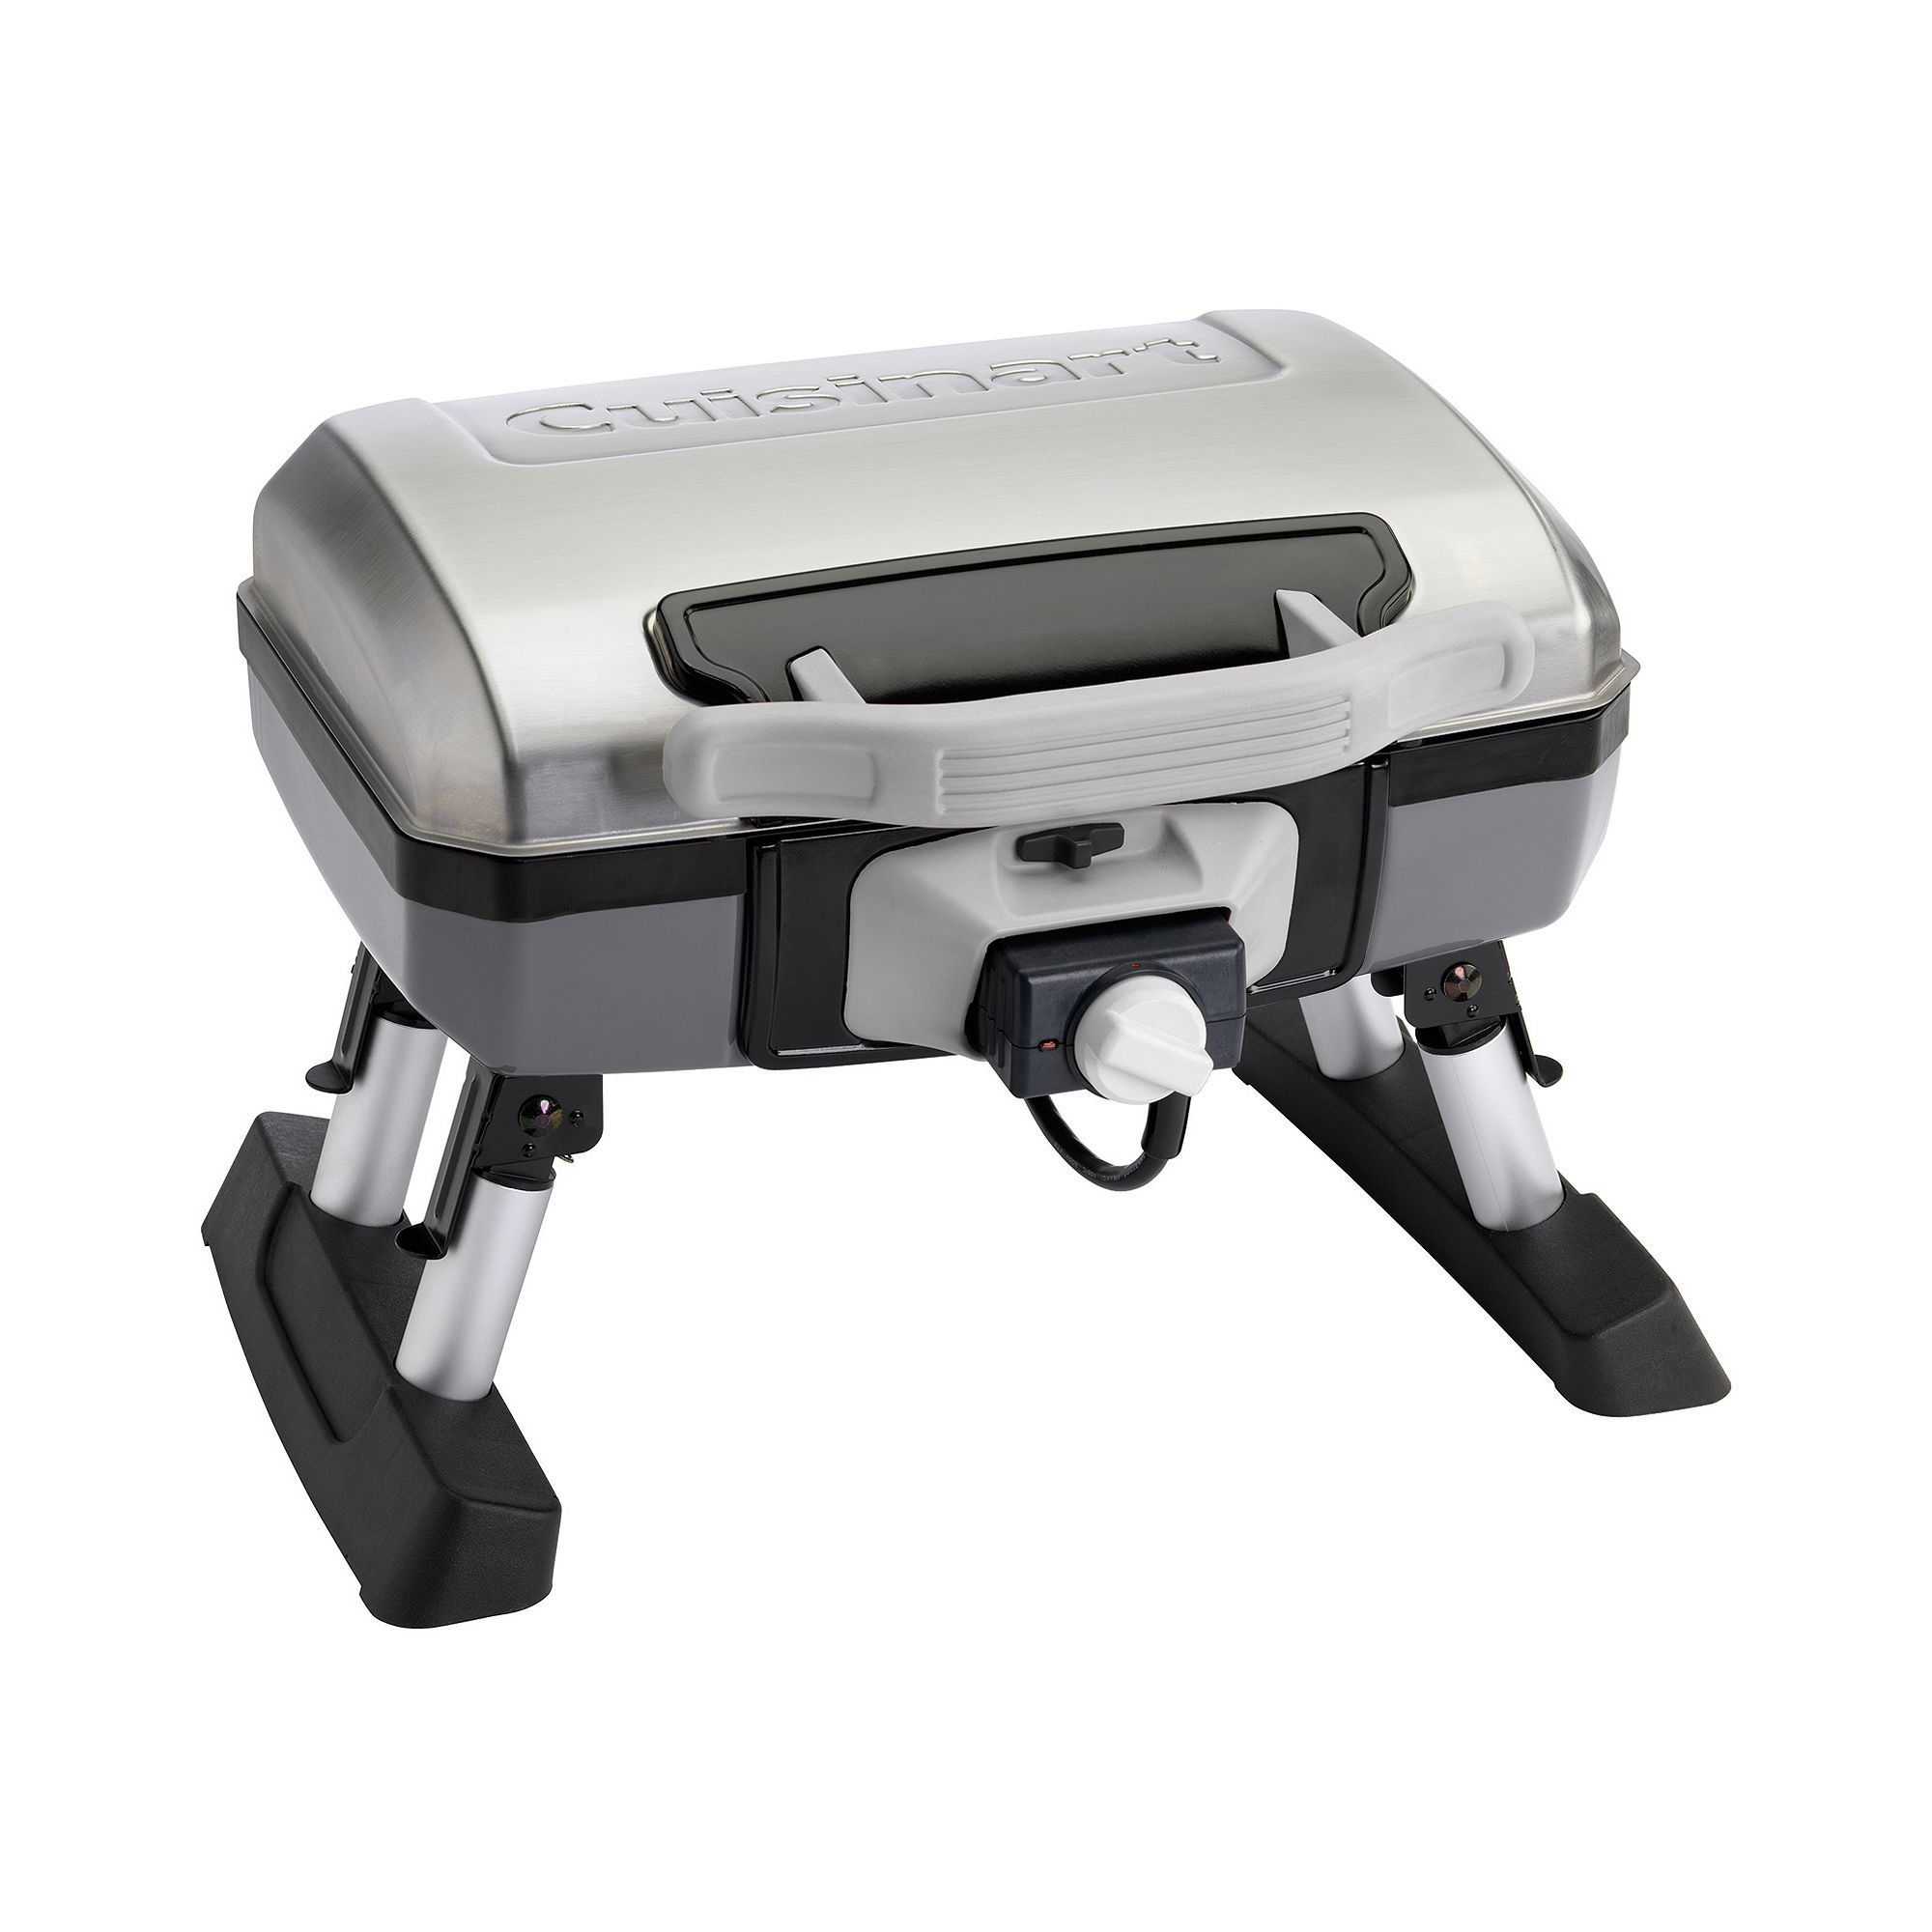 Cuisinart Everyday Portable Electric Tabletop Grill CEG-980T